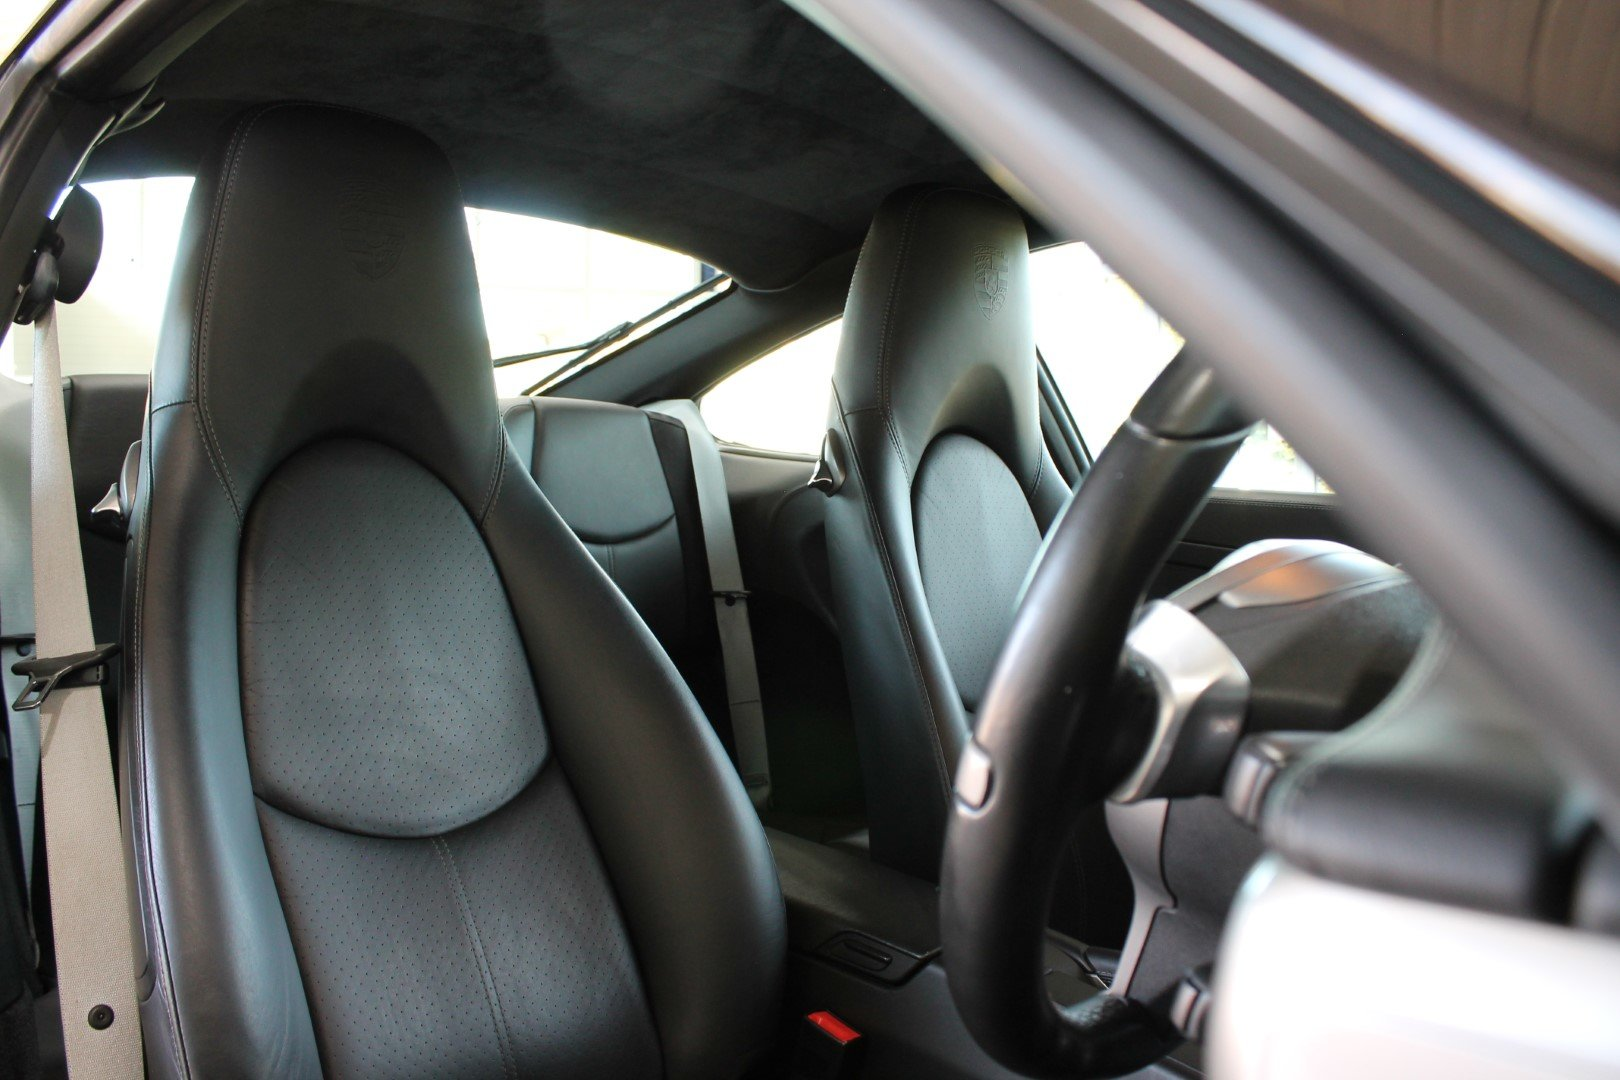 2010 Porsche 911 (997) 3.8 S PDK Coupe For Sale (picture 6 of 6)